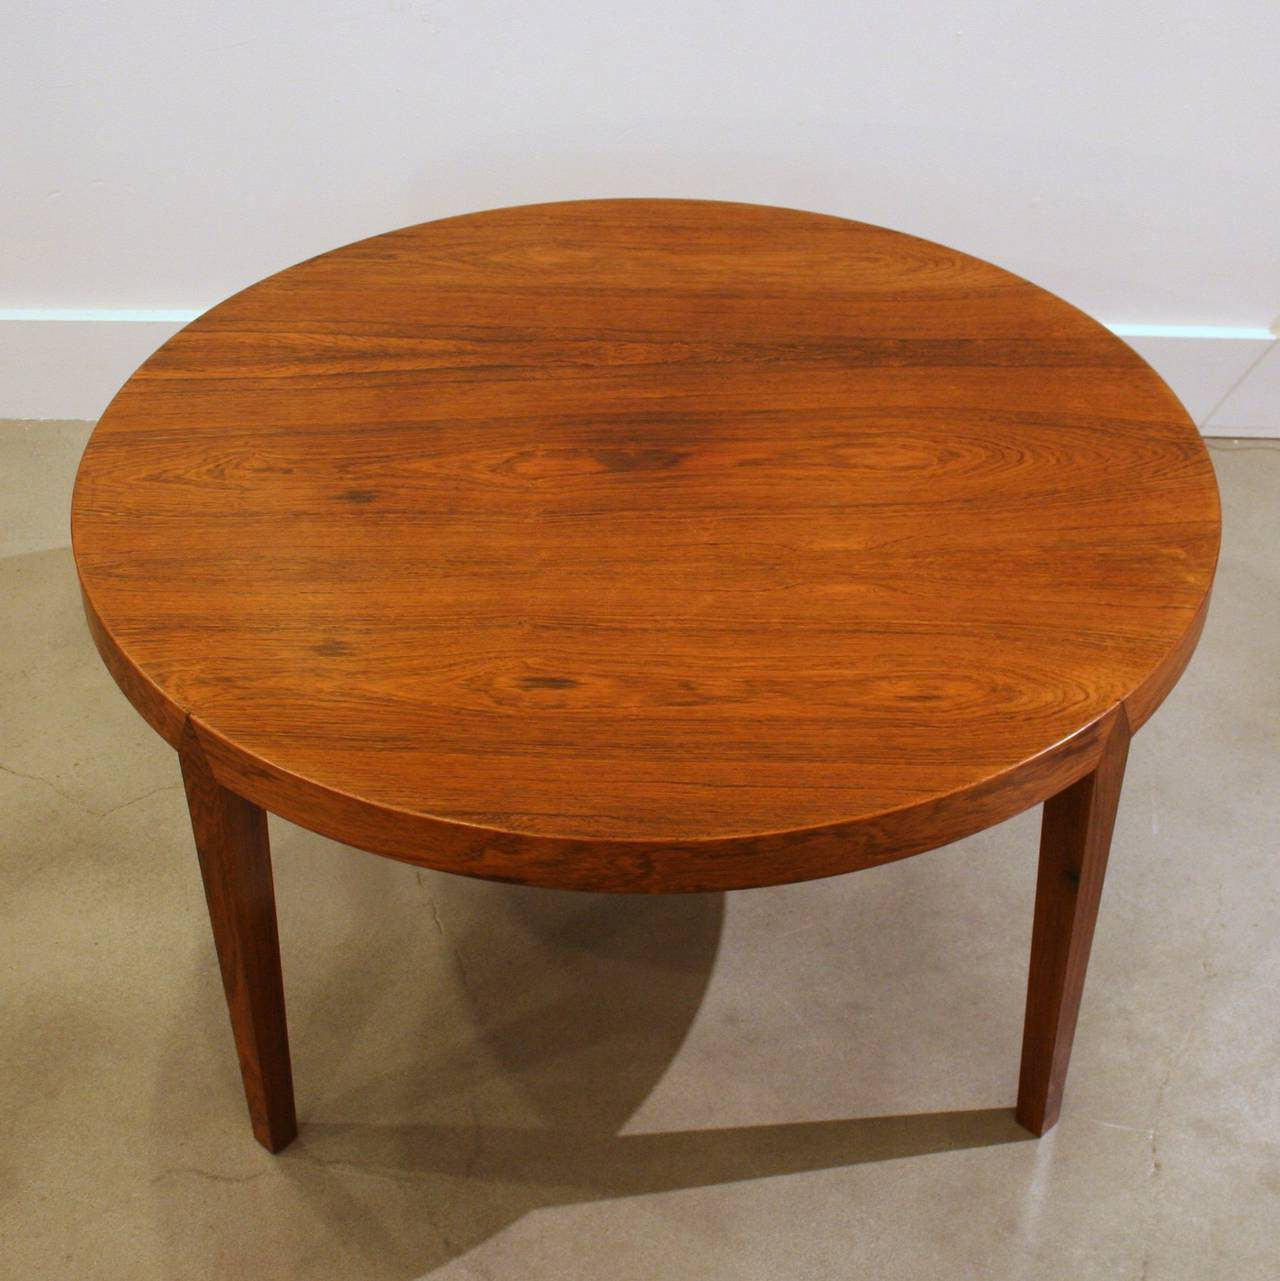 Most Recent Making Teak Round Coffee Table — New Home Design For Round Teak Coffee Tables (View 7 of 20)